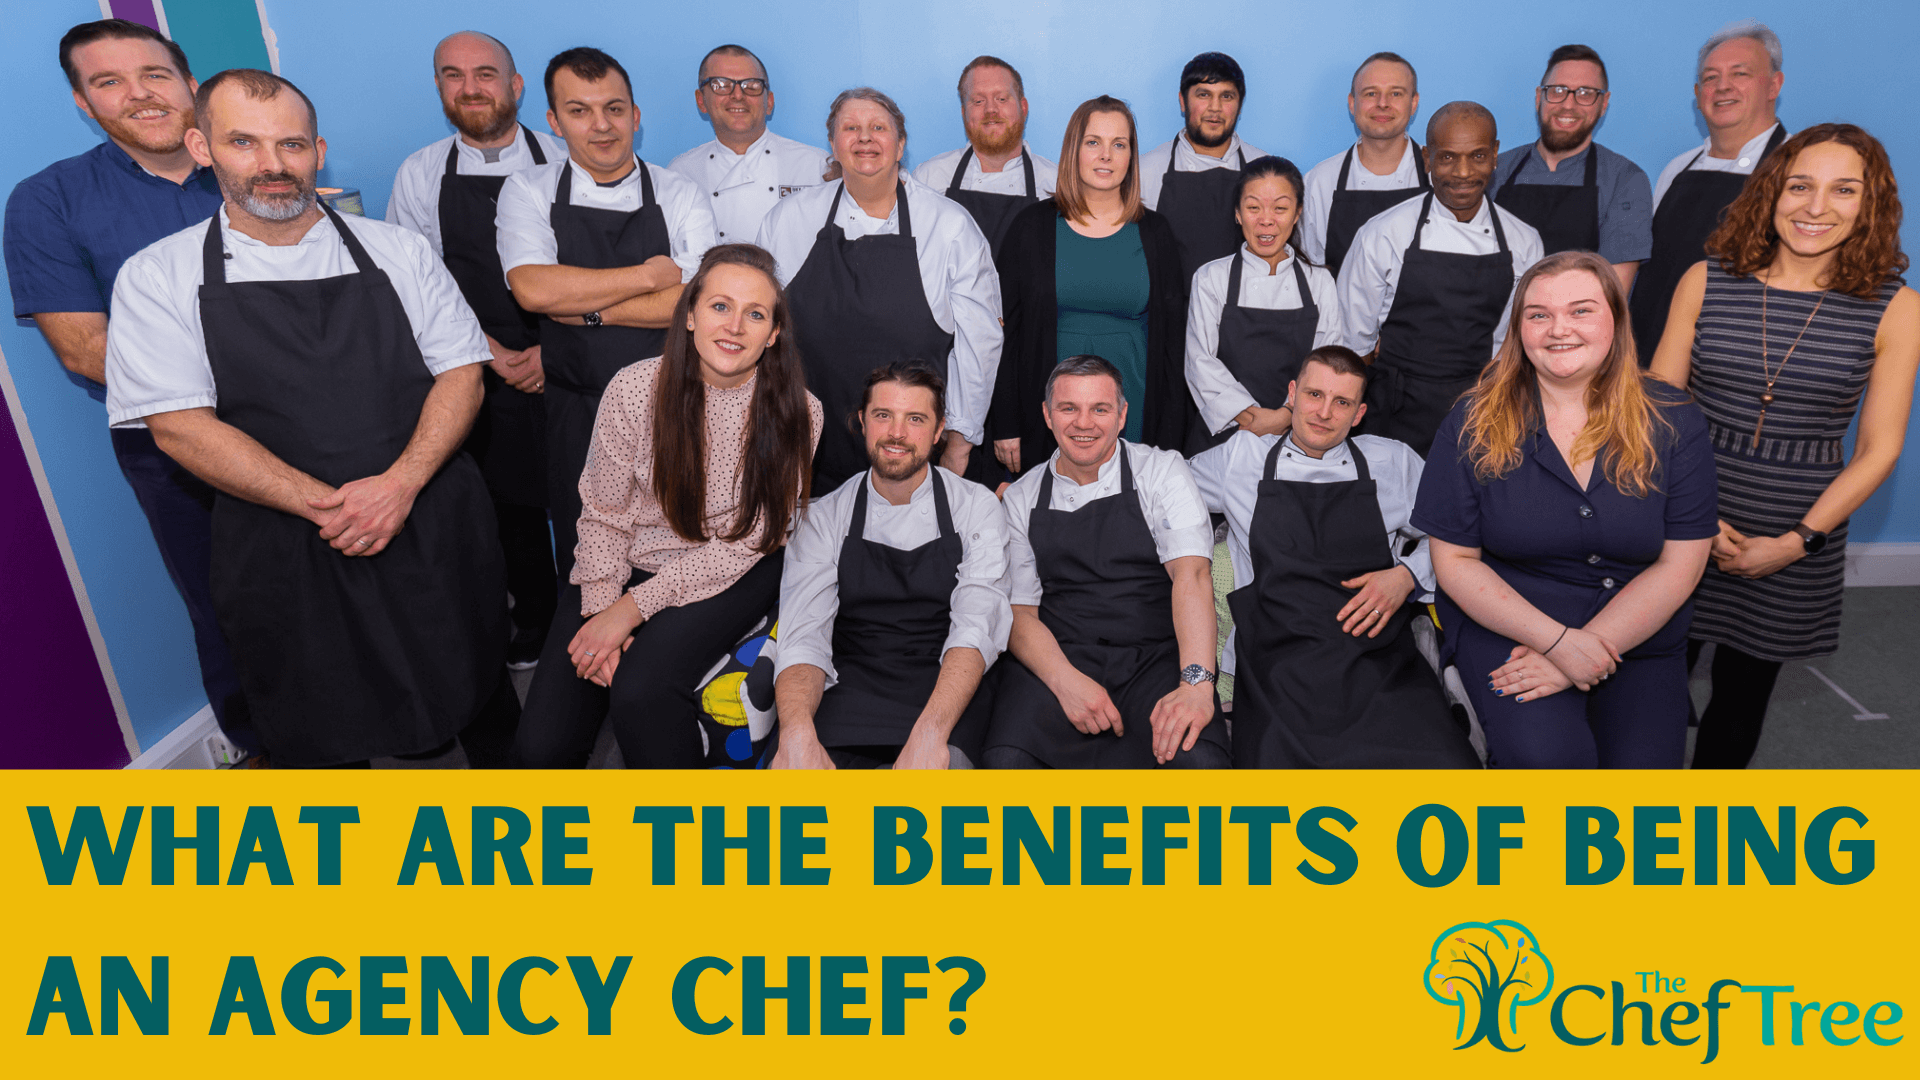 What Are the Benefits of Being An Agency Chef?